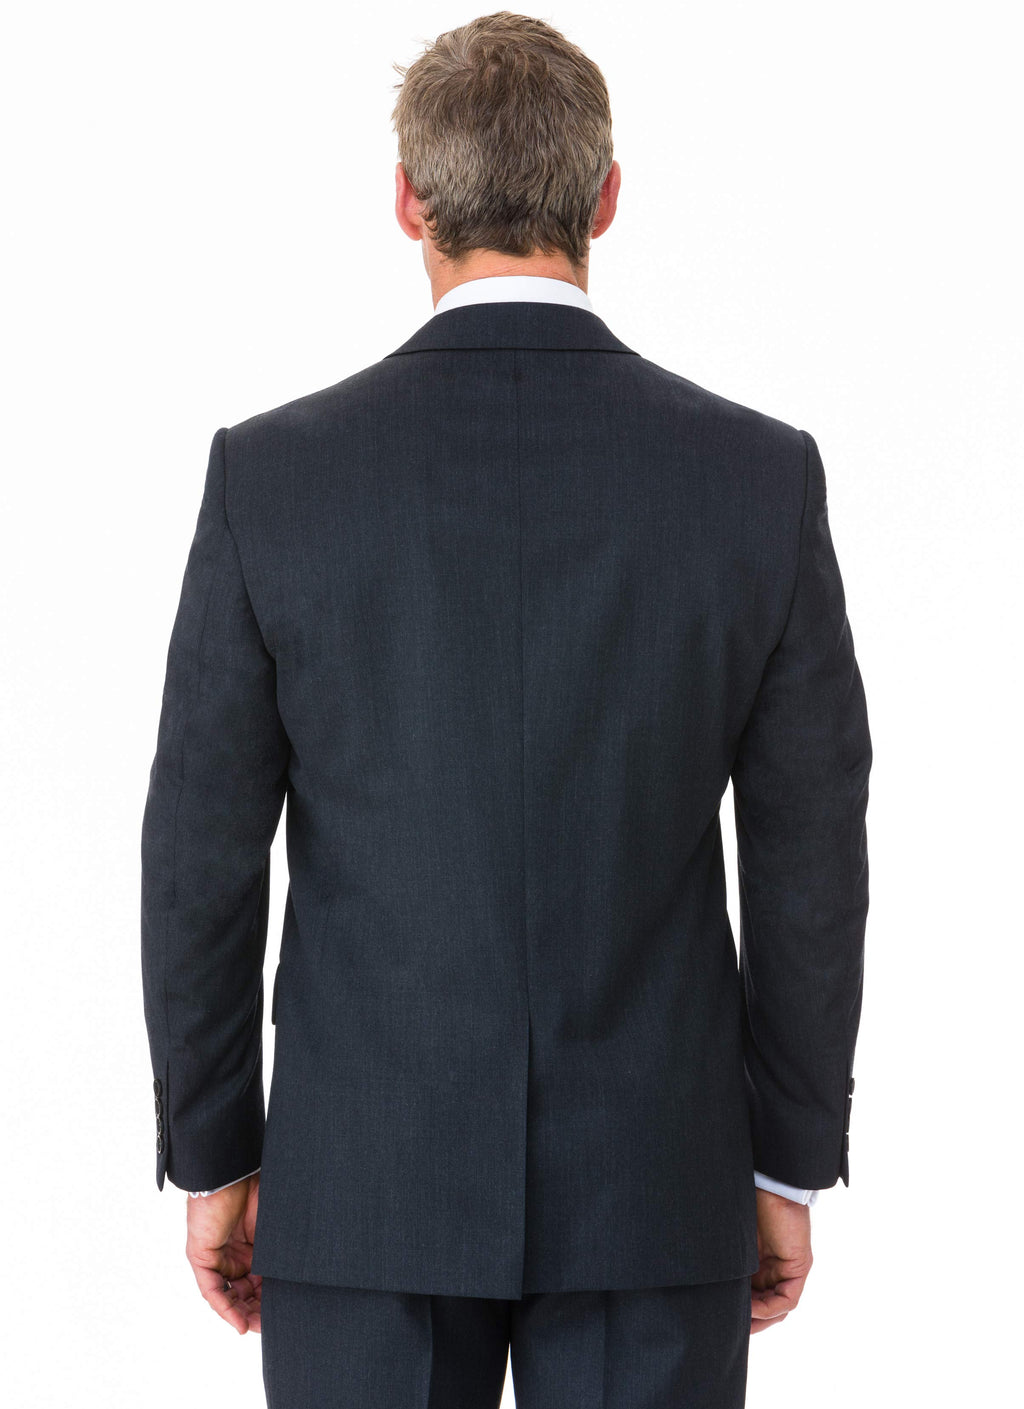 CHARLTON WOOL RICH CLASSIC FIT JACKET - CHARCOAL